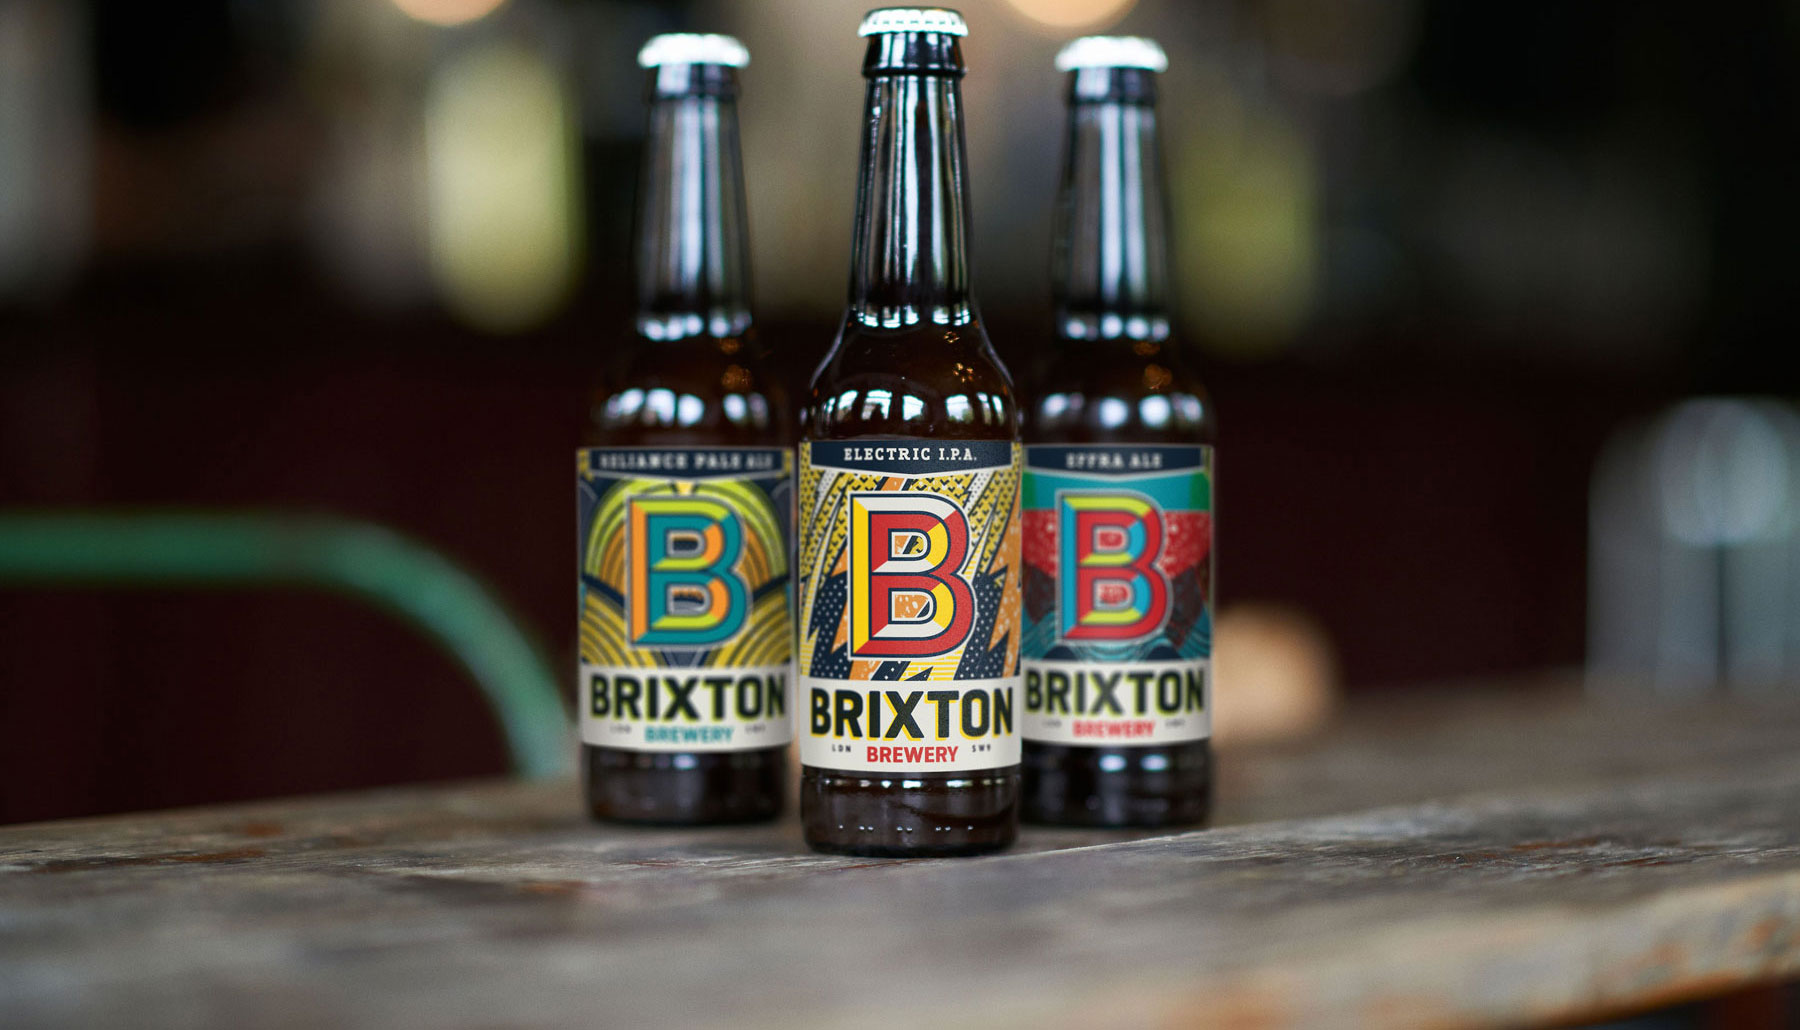 BRIXTON BREWERY - Making beer in the heart of one of London's most colourful and famous neighbourhoods.